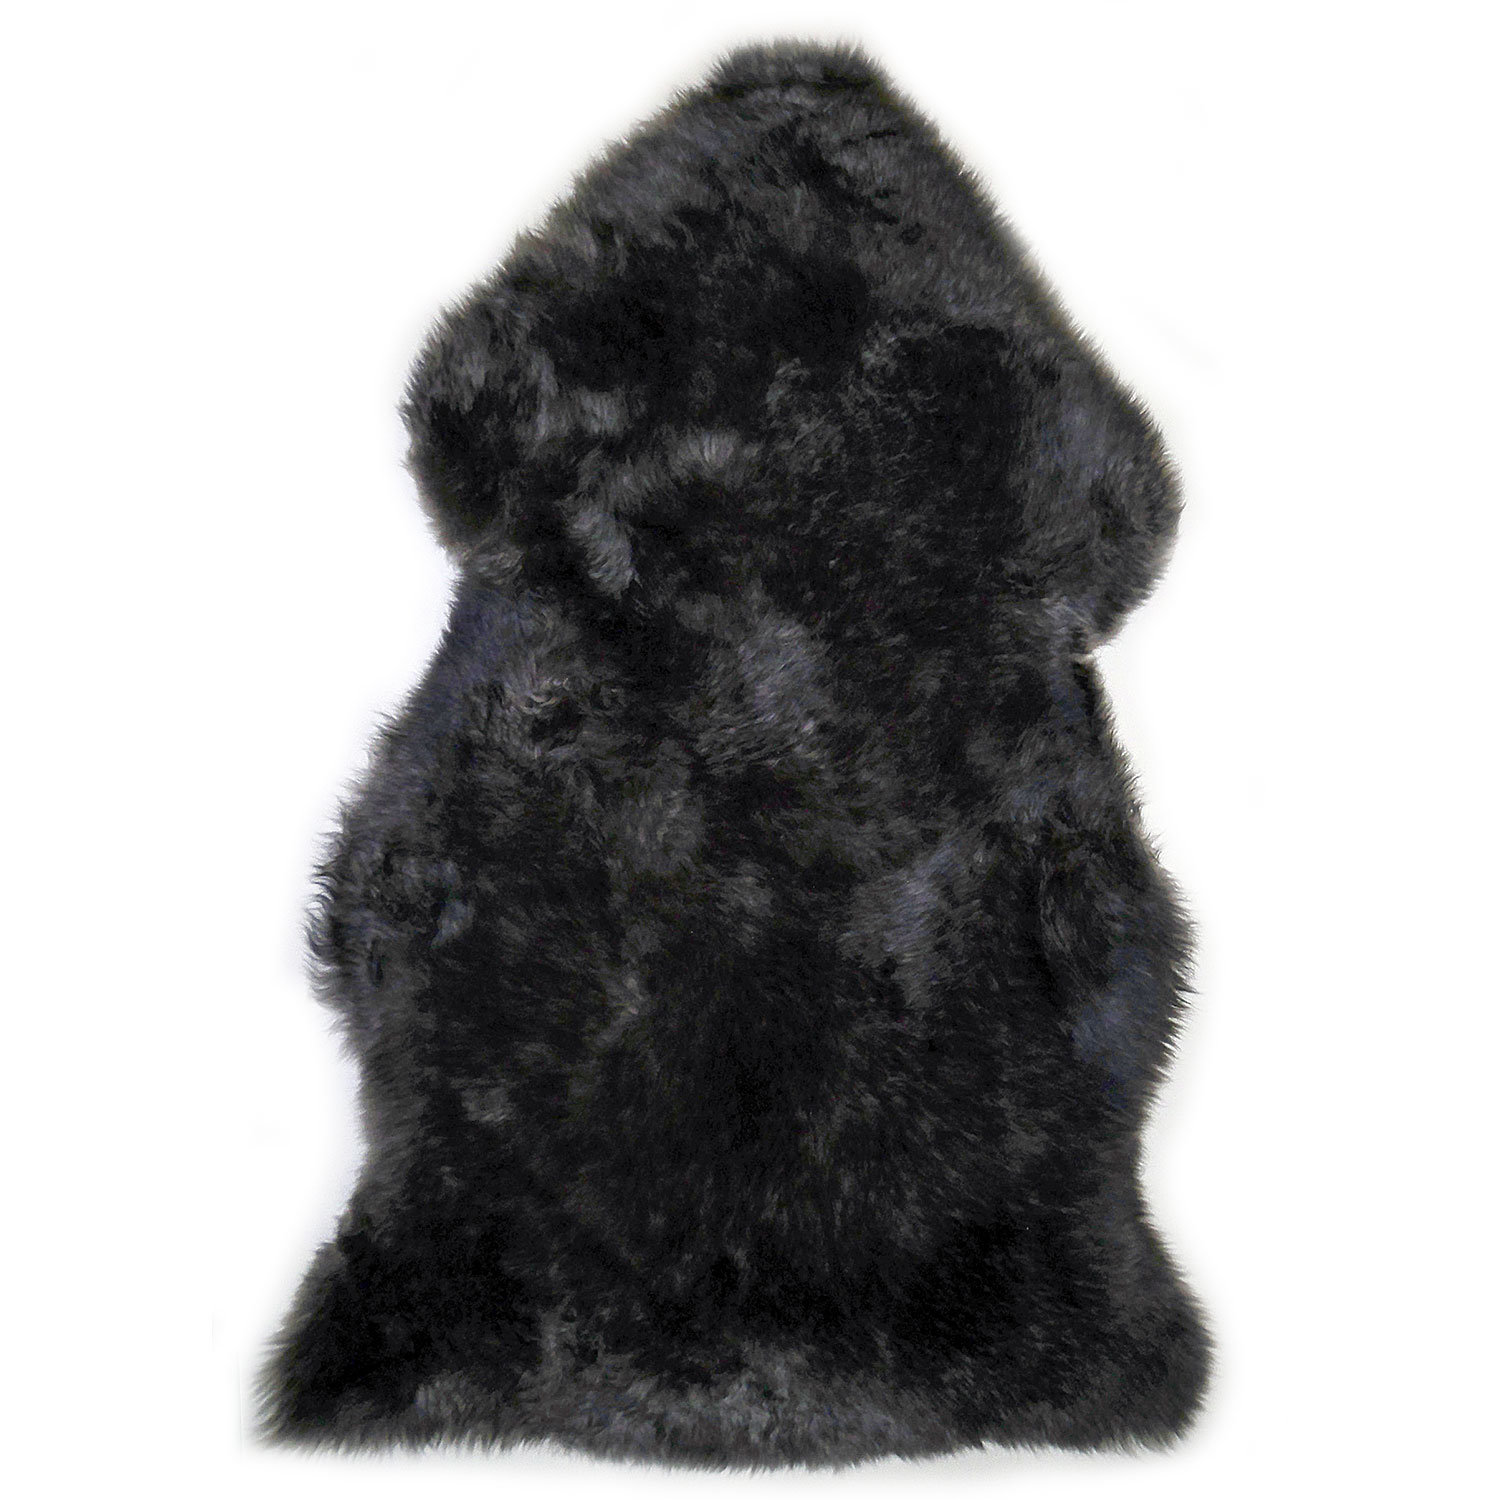 Sheepskin Rug Single Pelt Pewter with Black Tips